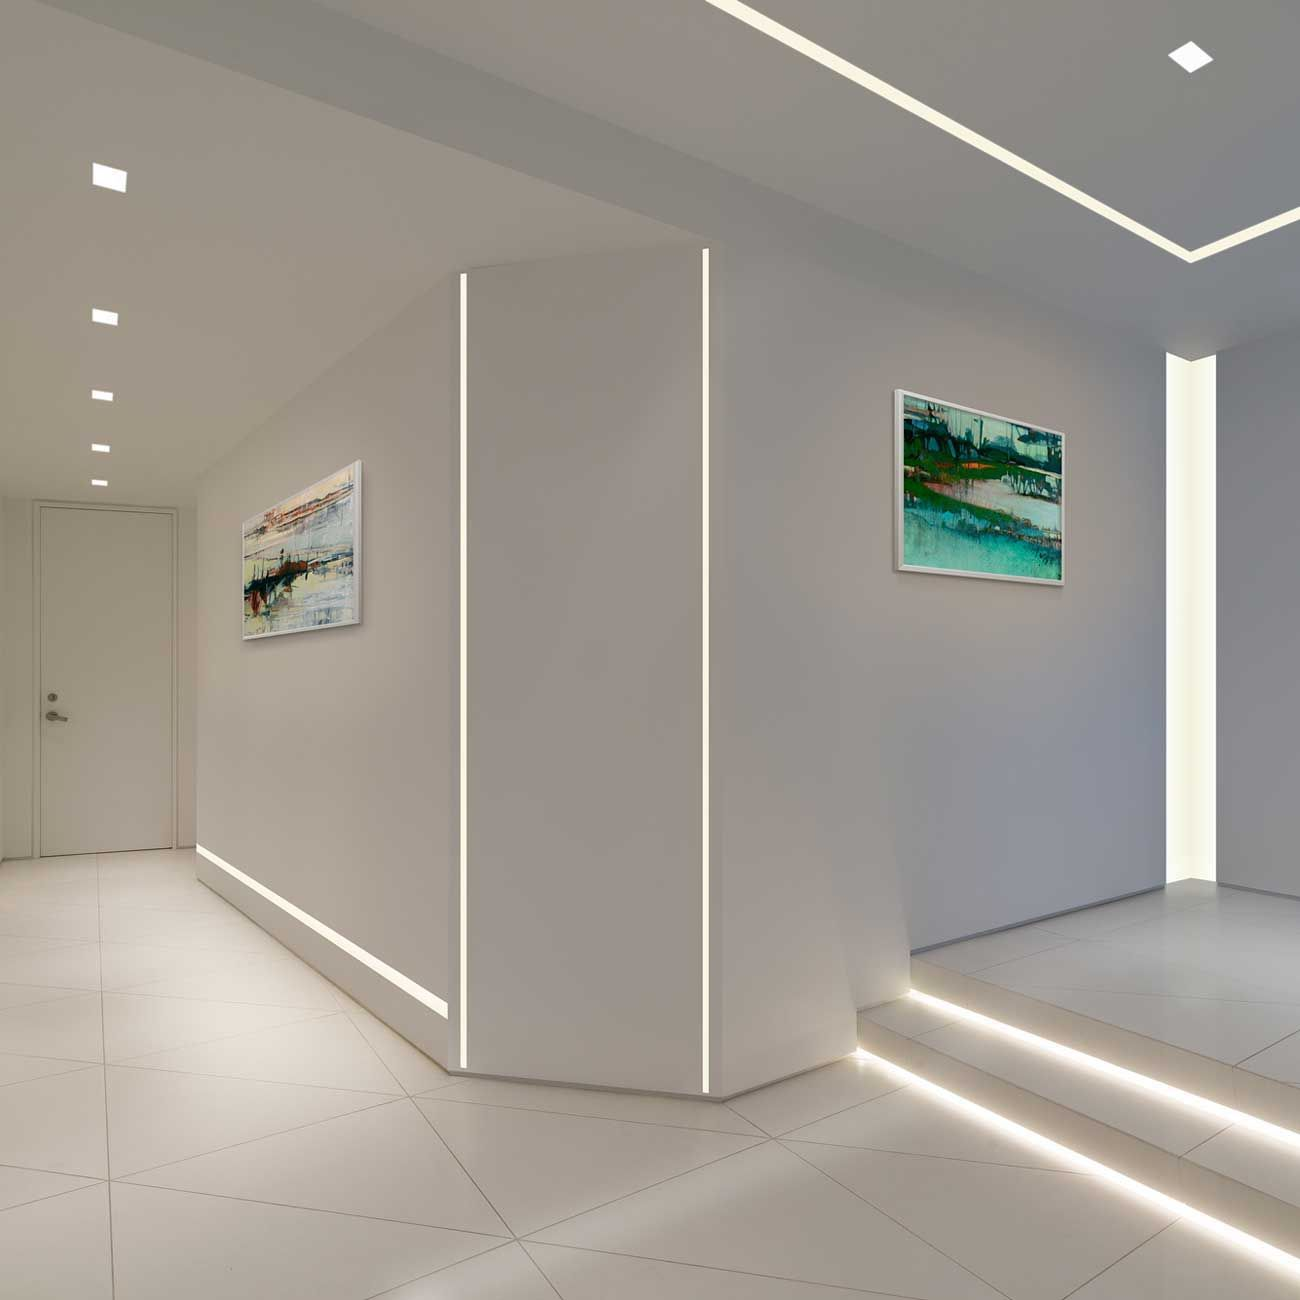 Led Spots Im Esszimmer Reveal Plaster In Led System 2 5w 24vdc By Pure Lighting Star